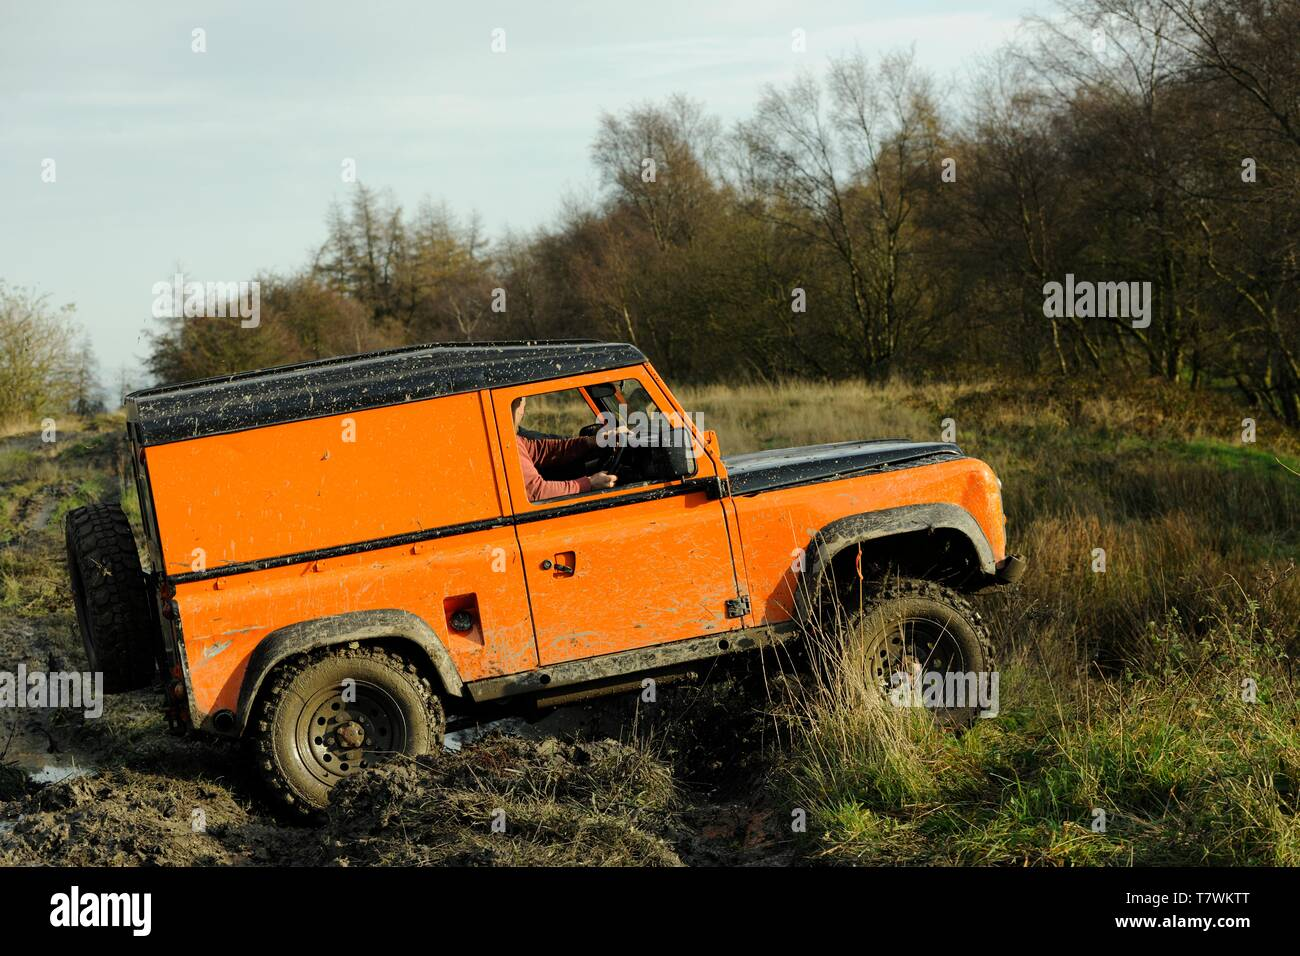 Off-road Landrover tackles a muddy trial course on a Winter's day in the Peak District, Derbyshire - Stock Image